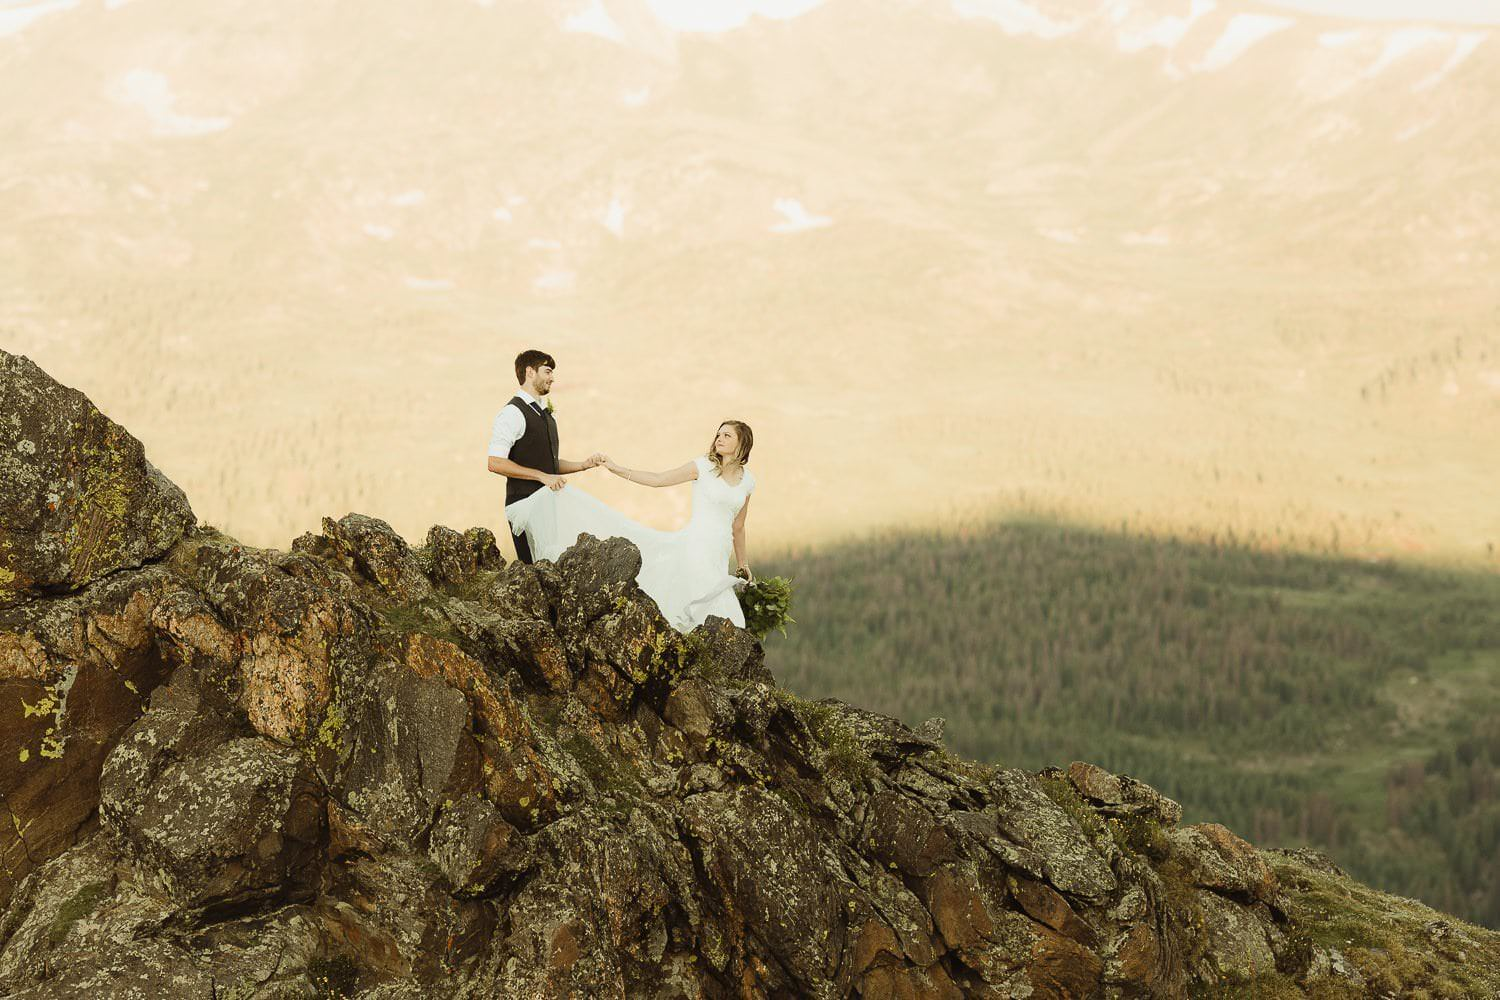 ADVENTURE DESTINATION ELOPEMENT|ROCKY MOUNTAIN NATIONAL PARK WEDDING|RMNP ELOPEMENT|GRAND COUNTY HIKING ADVENTURES|SELF-SOLEMNIZING COLORADO ELOPEMENT |TANDA+STEPHEN